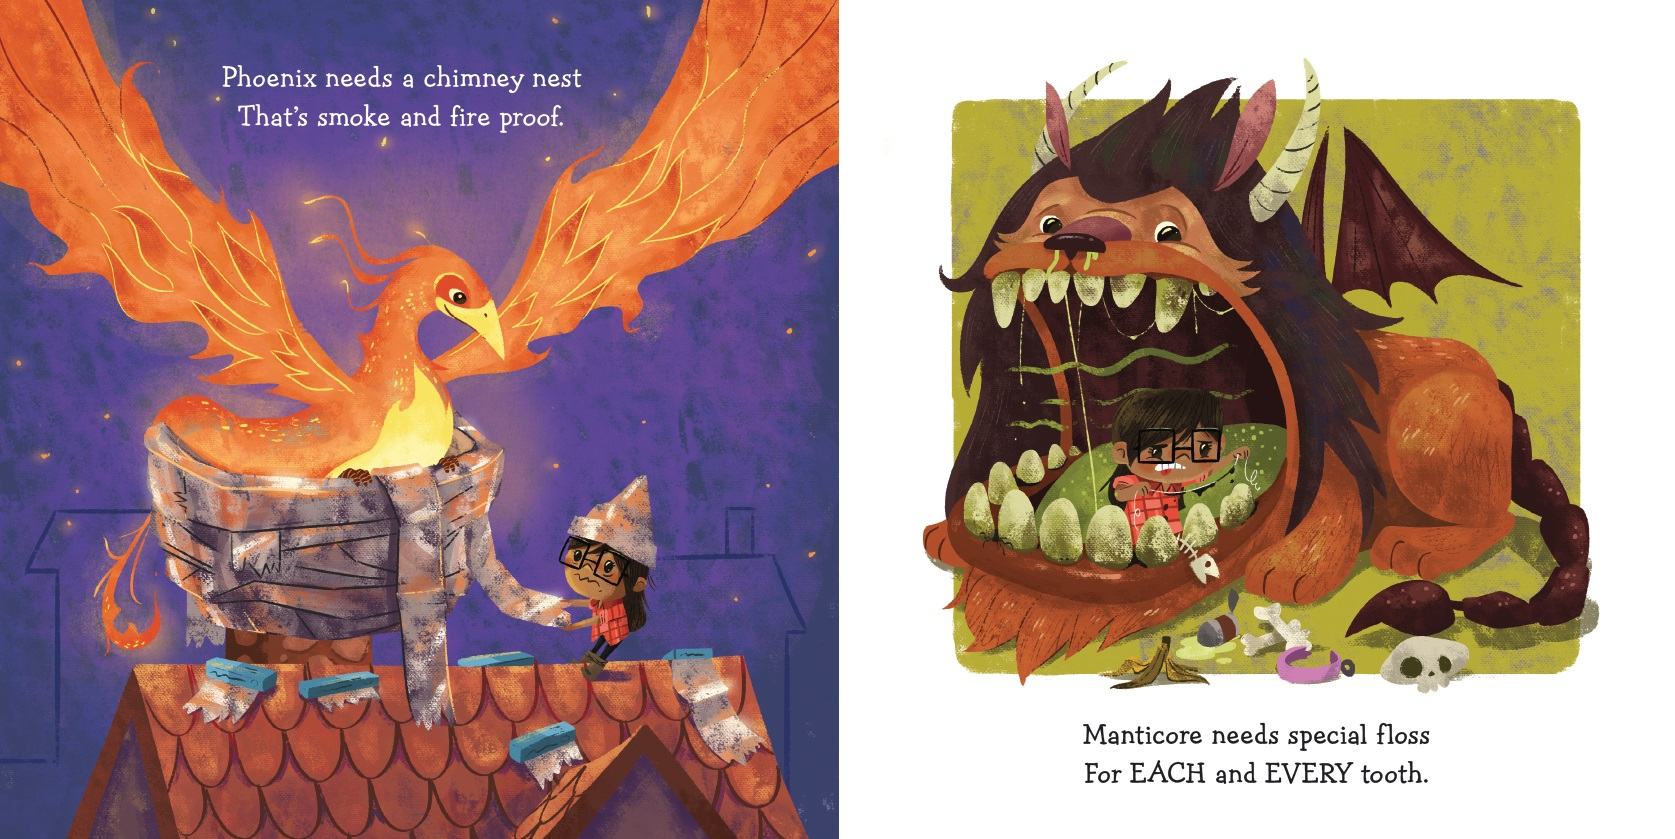 celebrate-picture-books-picture-book-review-if-I-had-a-gryphon-phoenix